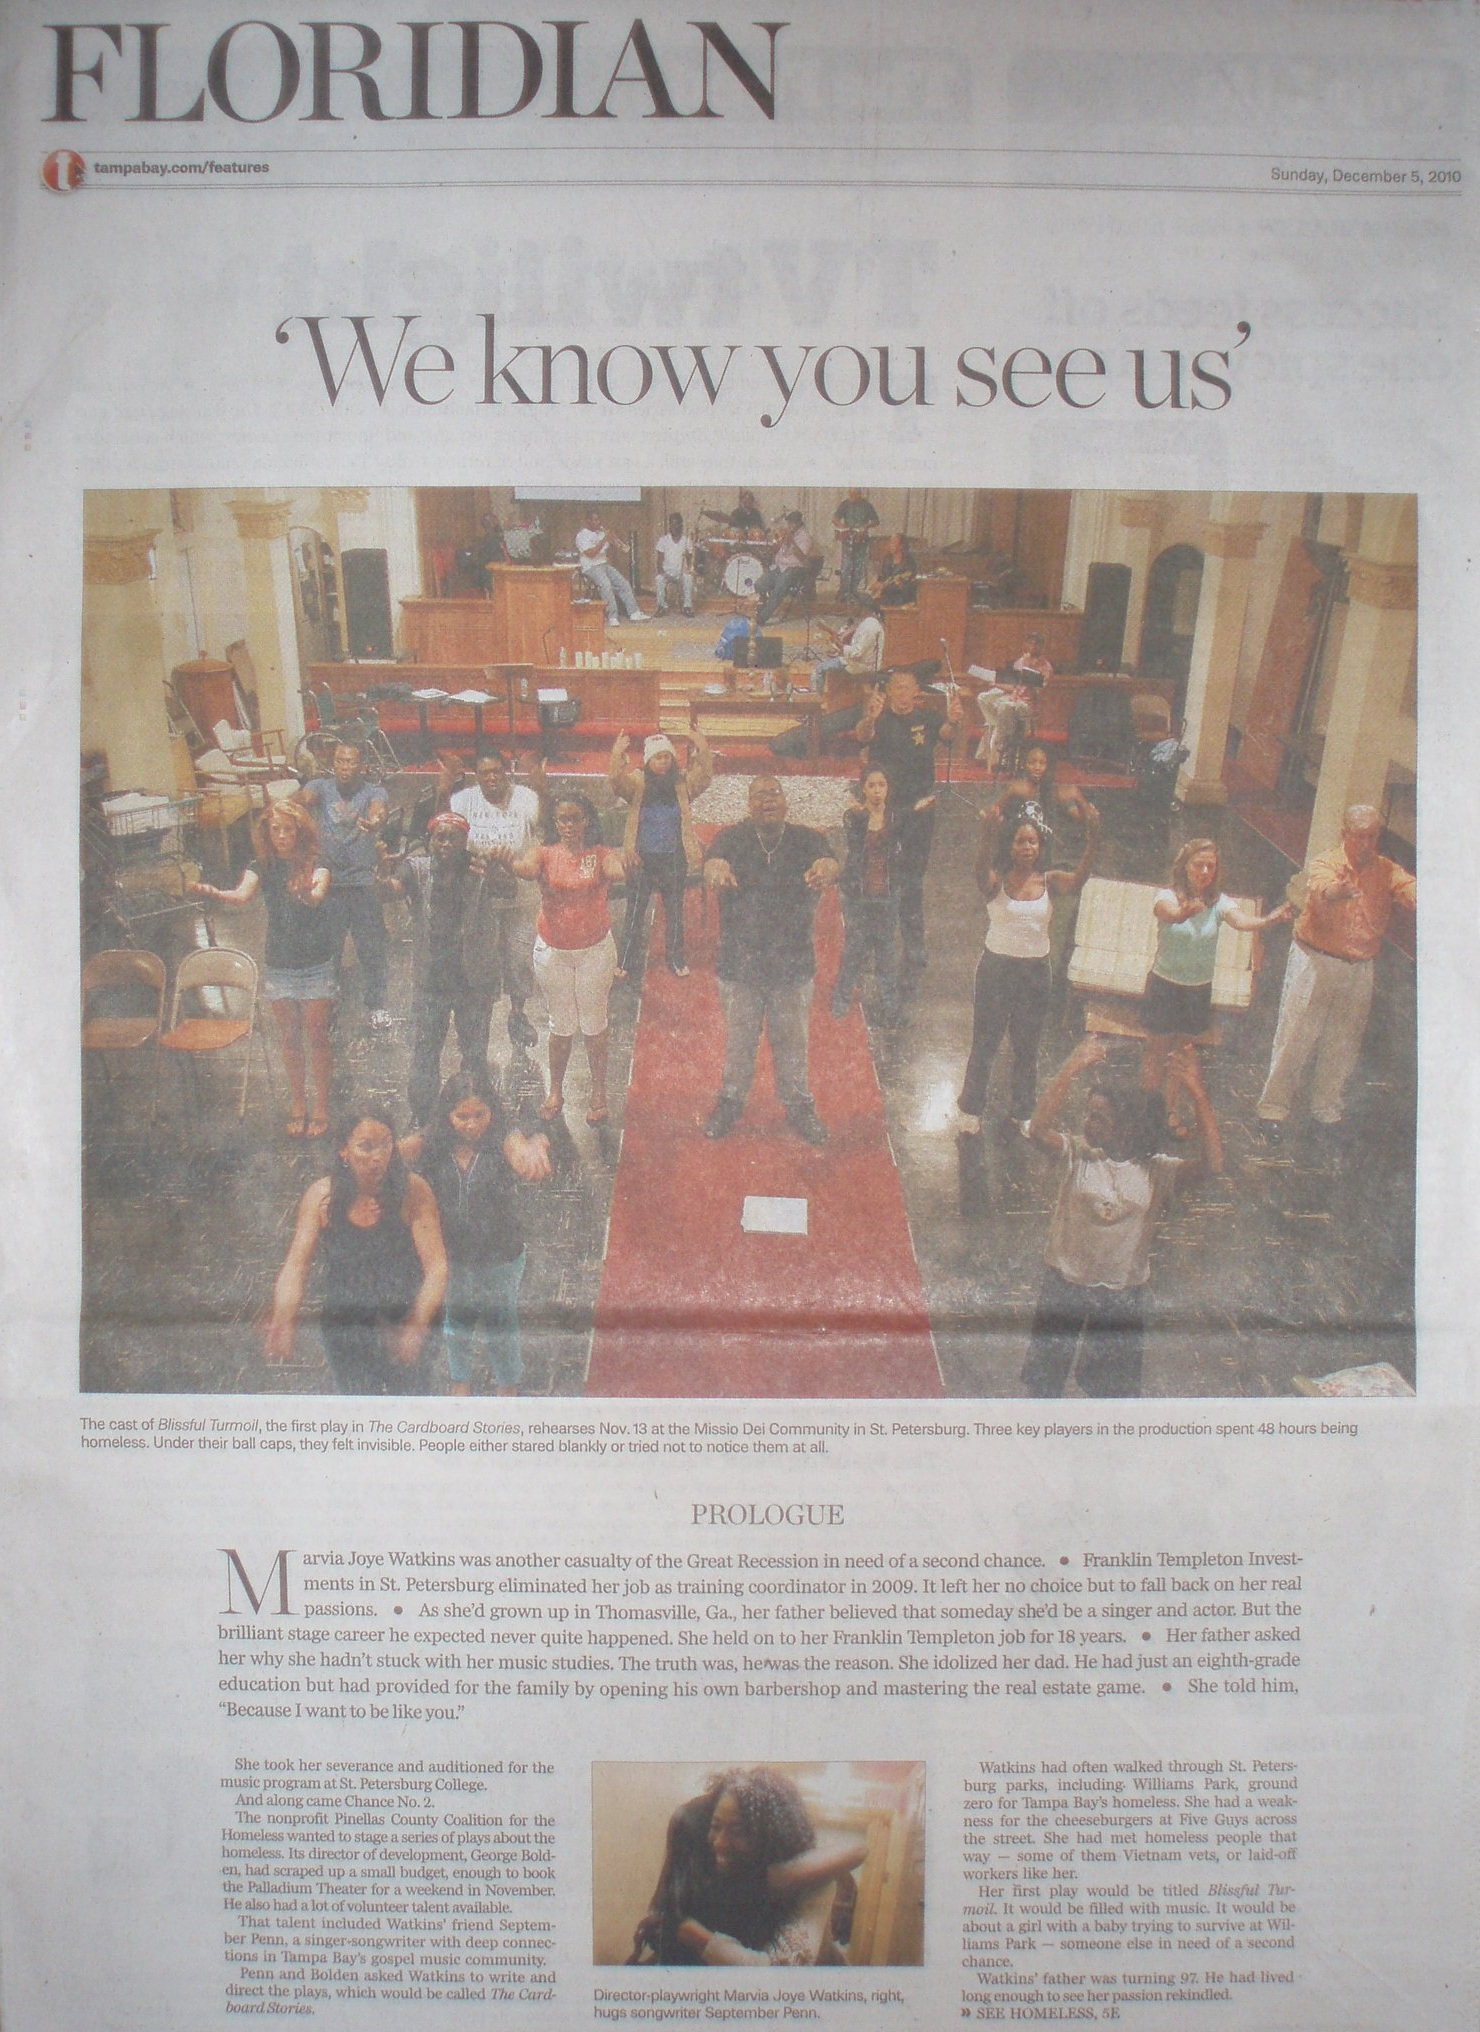 A Tampa Bay Feature - The Tampa Bay Times, Florida's largest newspaper, featured the making of The Cardboard Stories in a lengthy story that followed the play from creation to the stage.